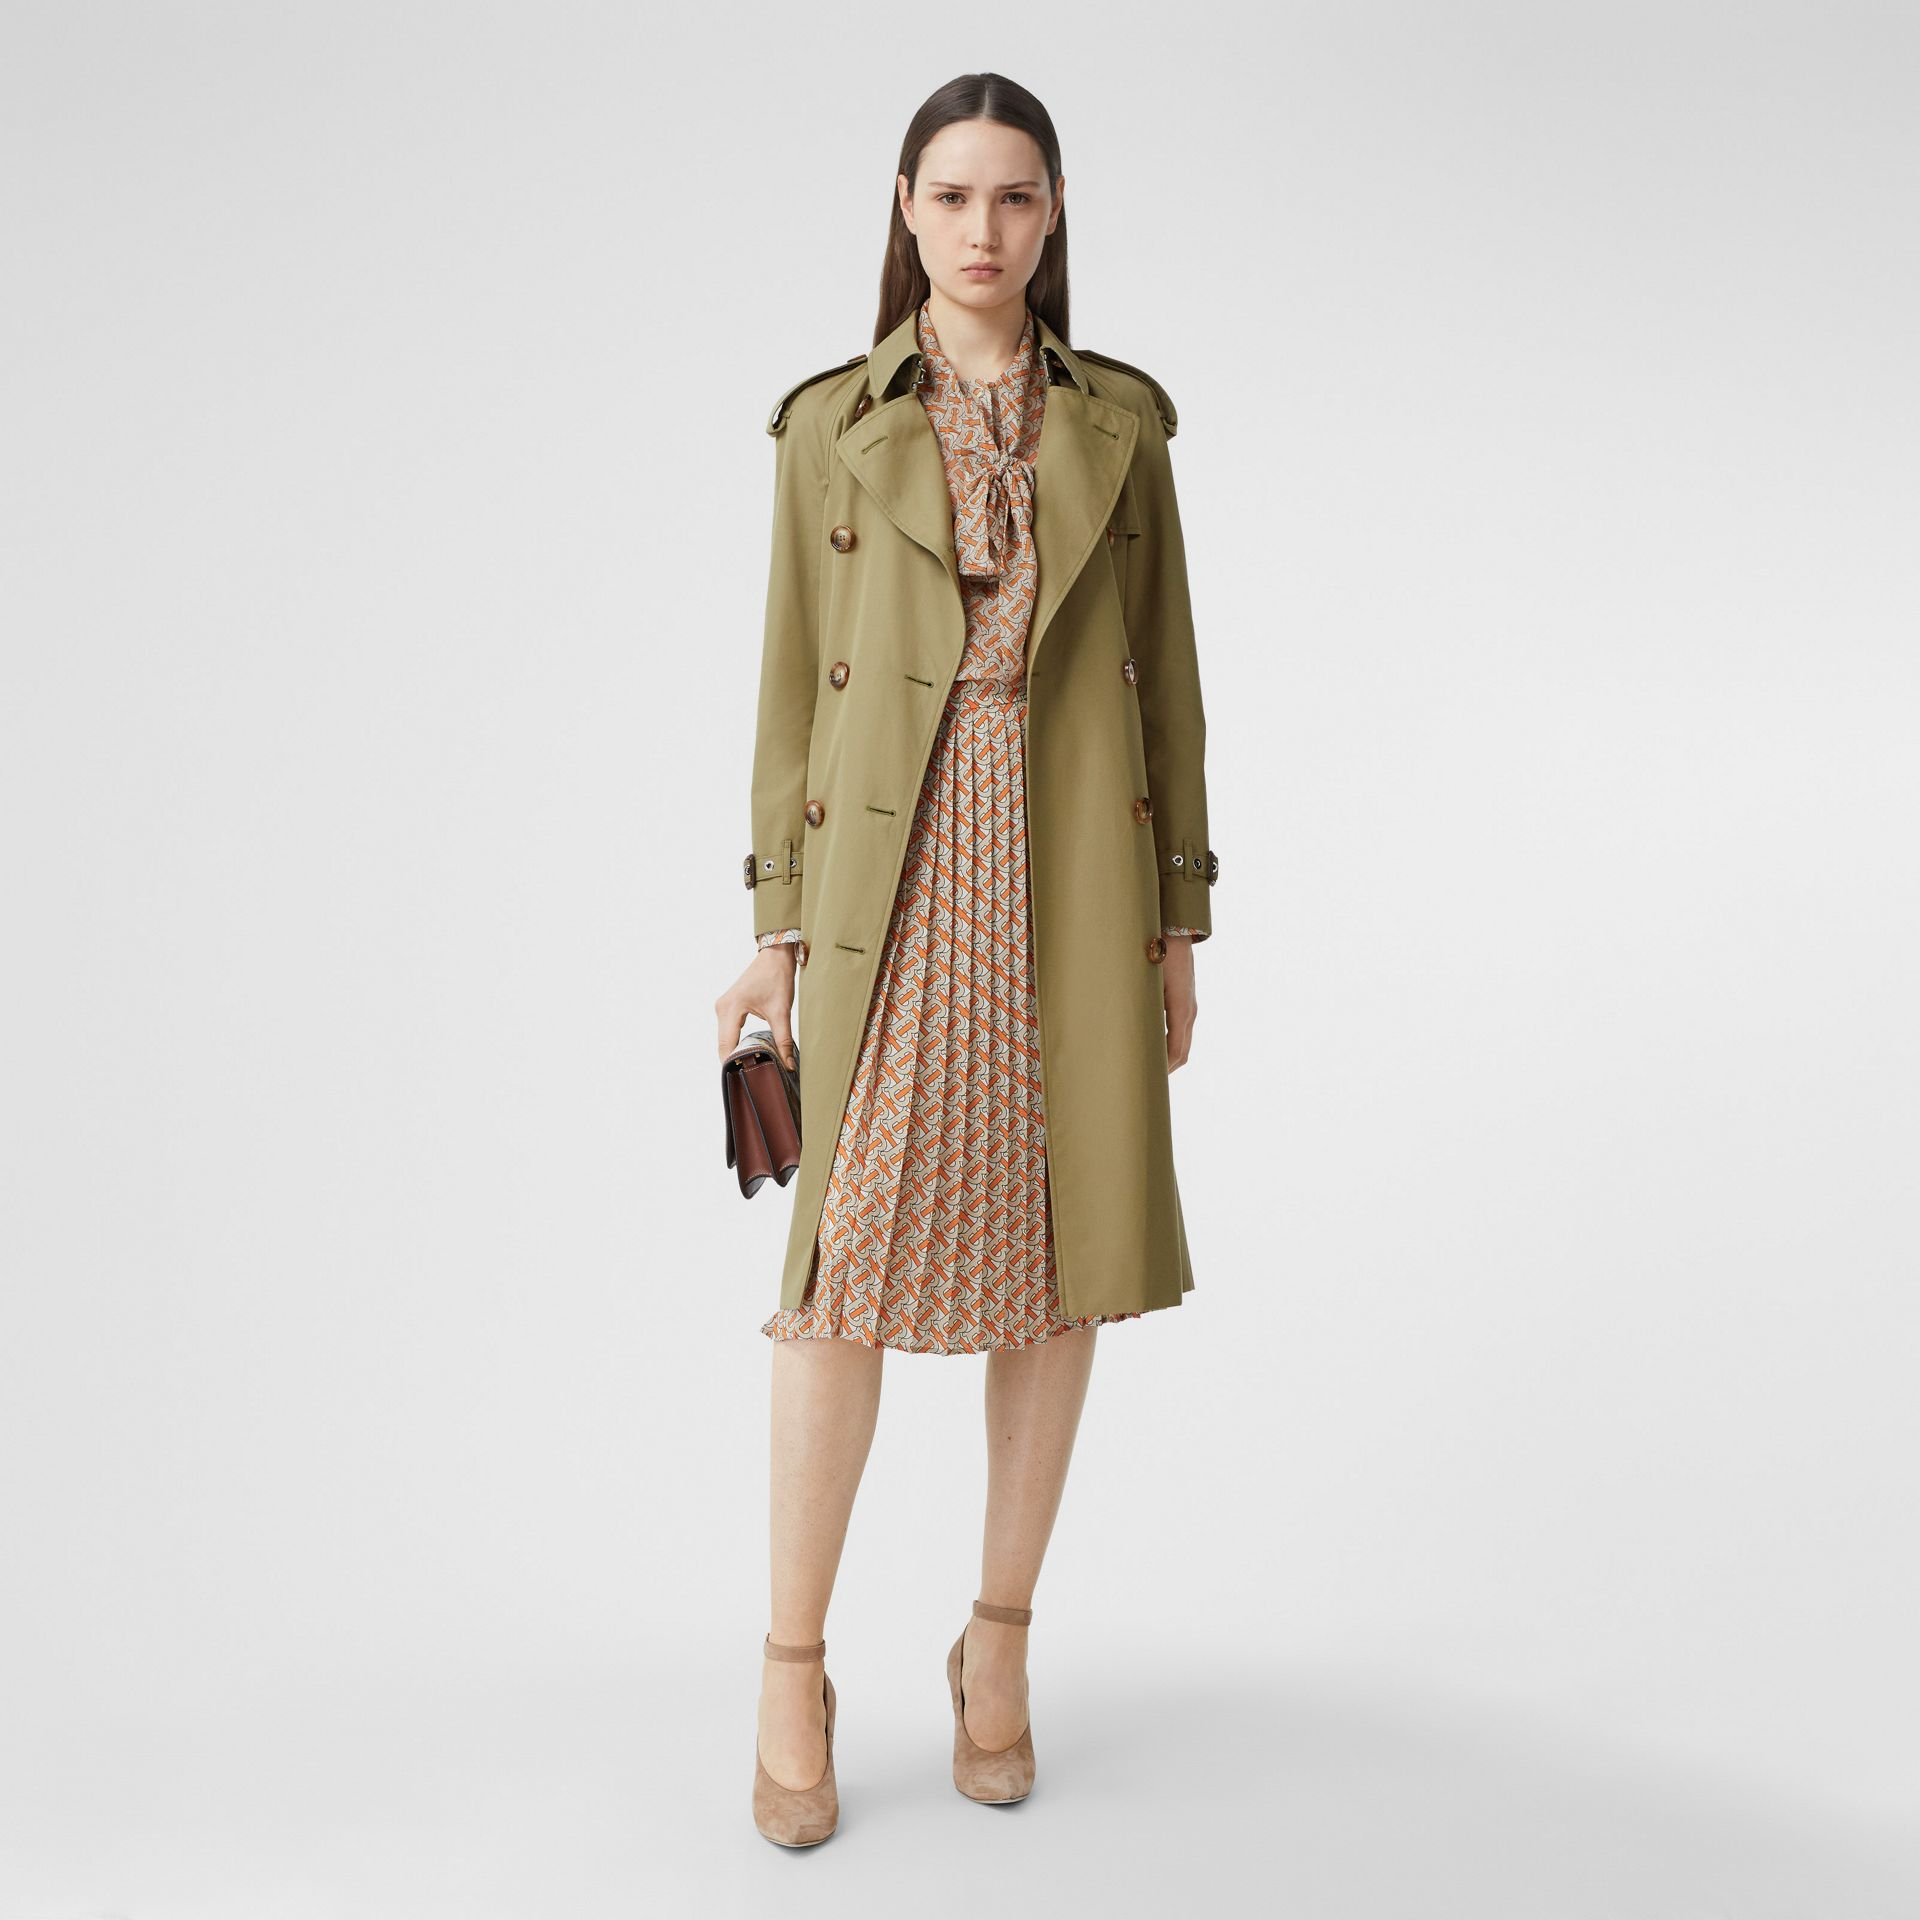 Animalia Print-lined Cotton Gabardine Trench Coat in Rich Olive - Women | Burberry - gallery image 7